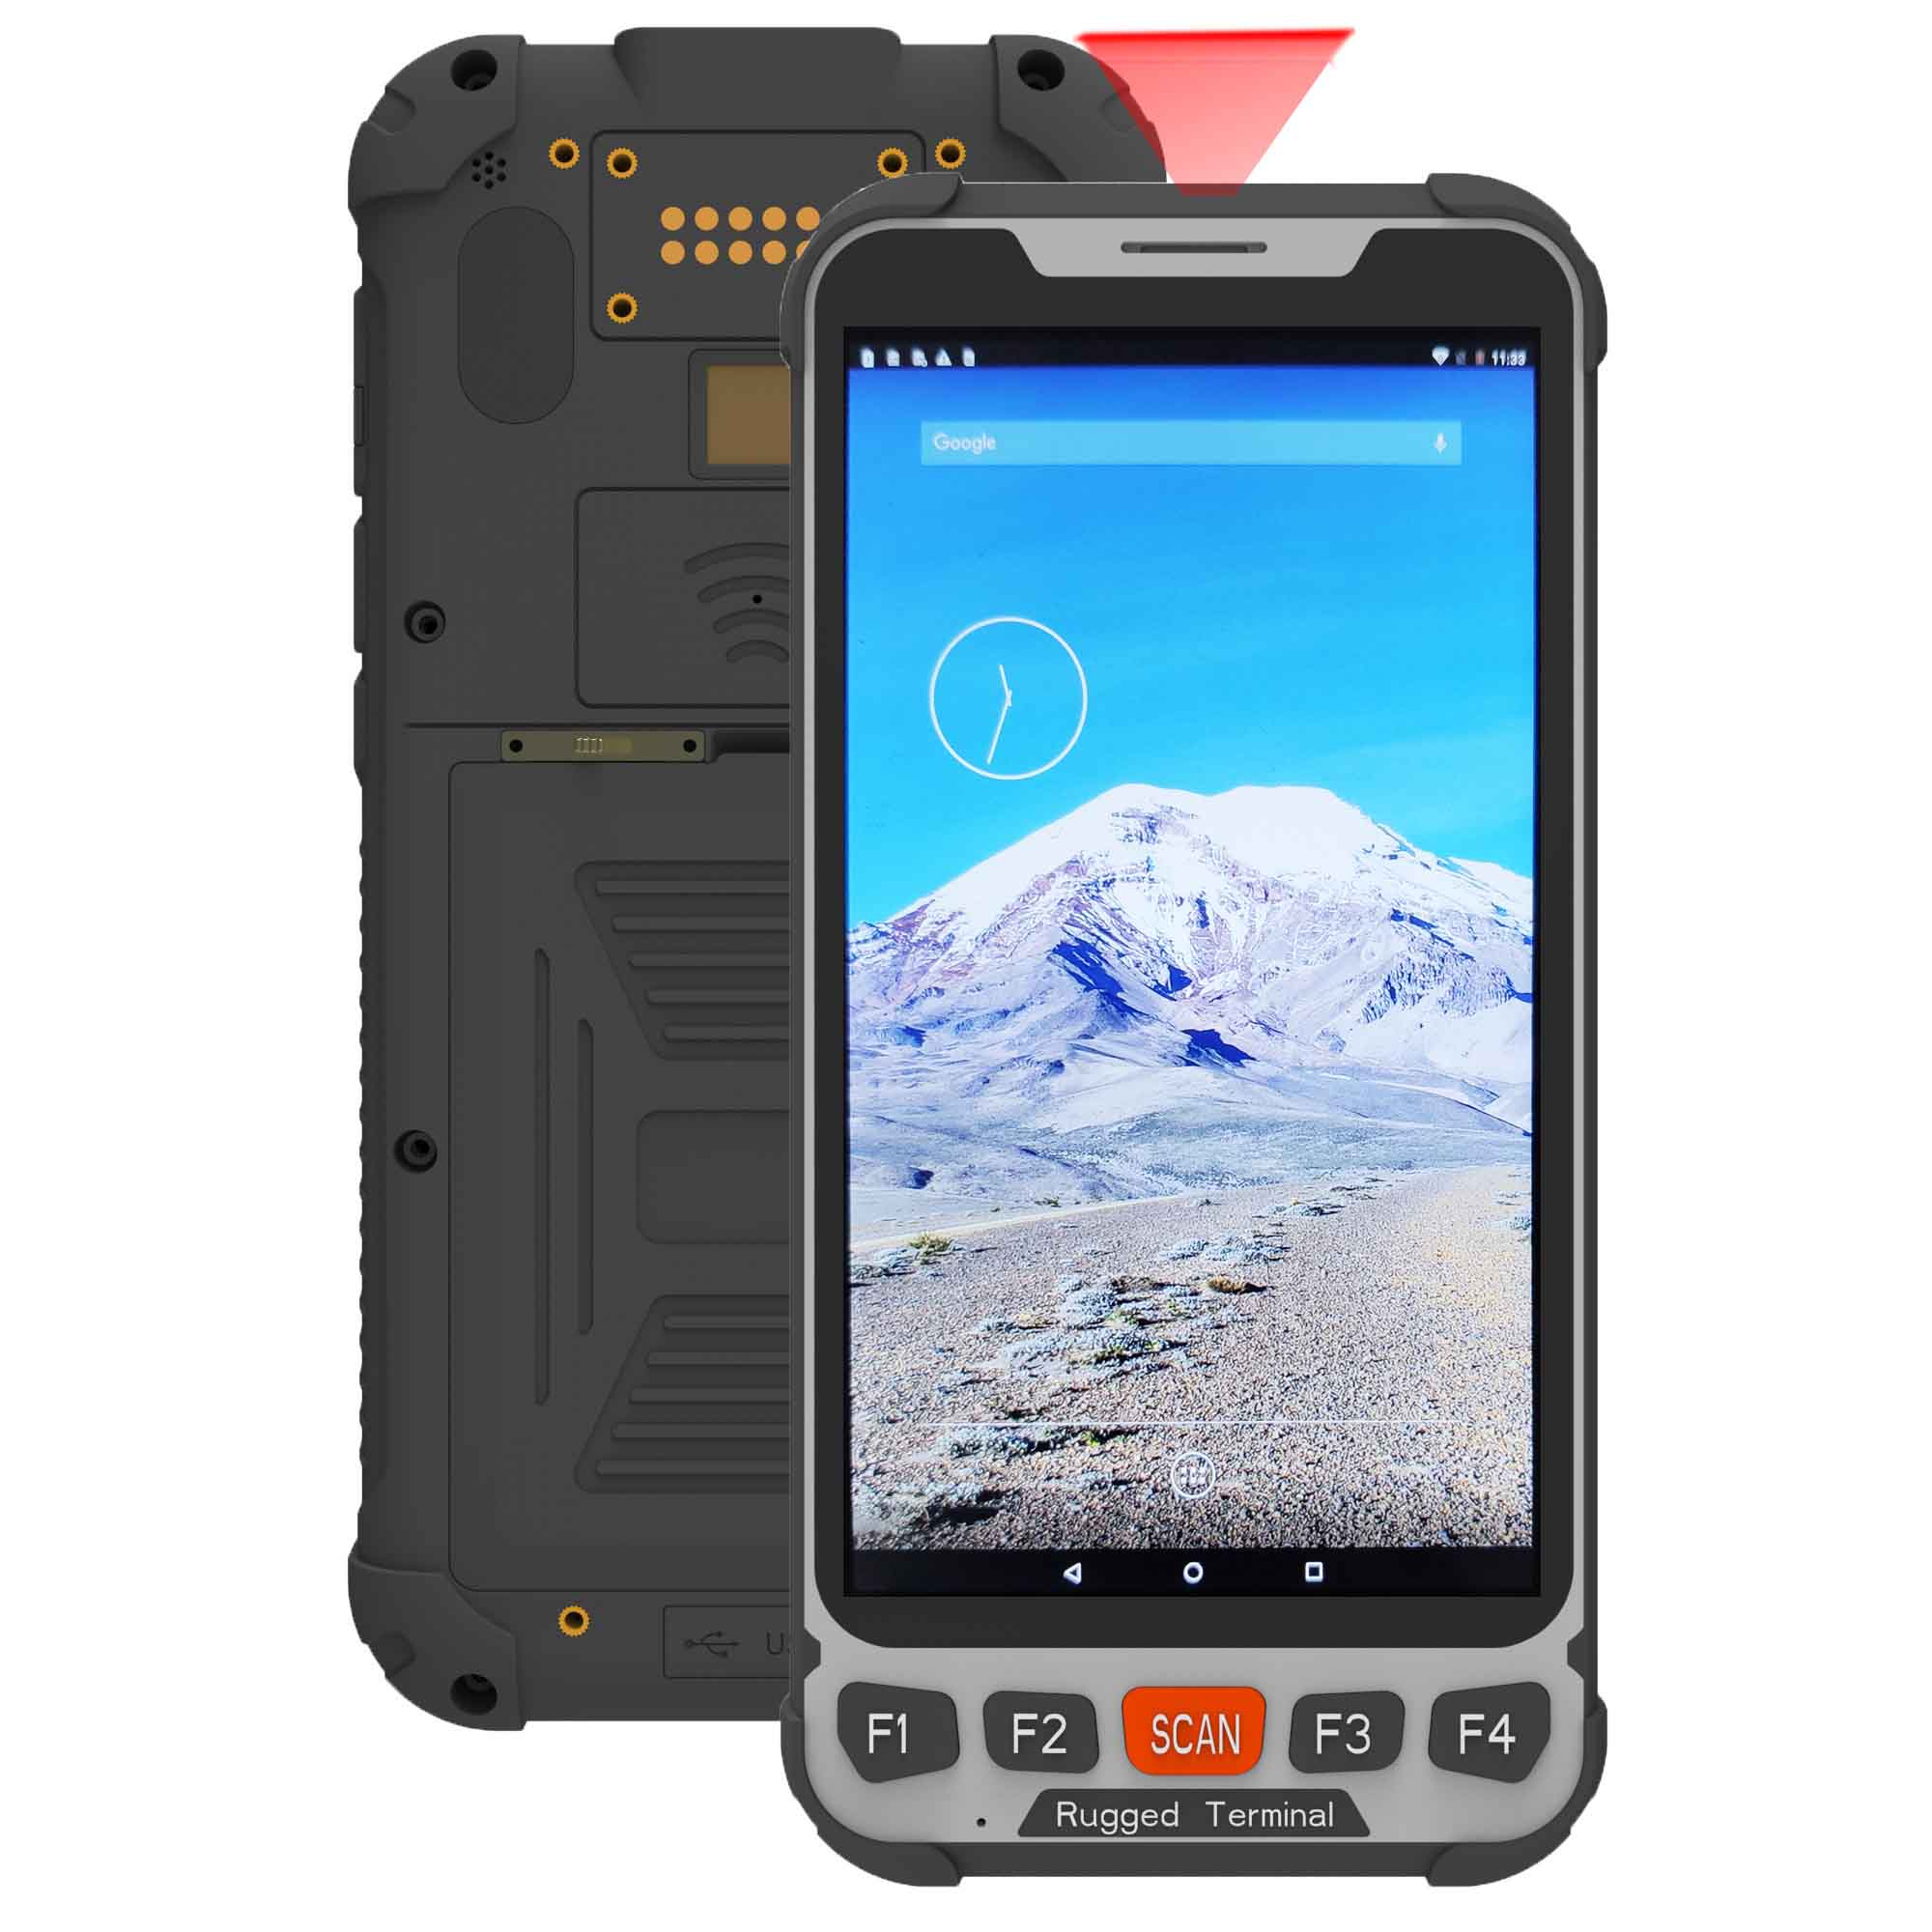 5.5 inch android rugged handheld terminal